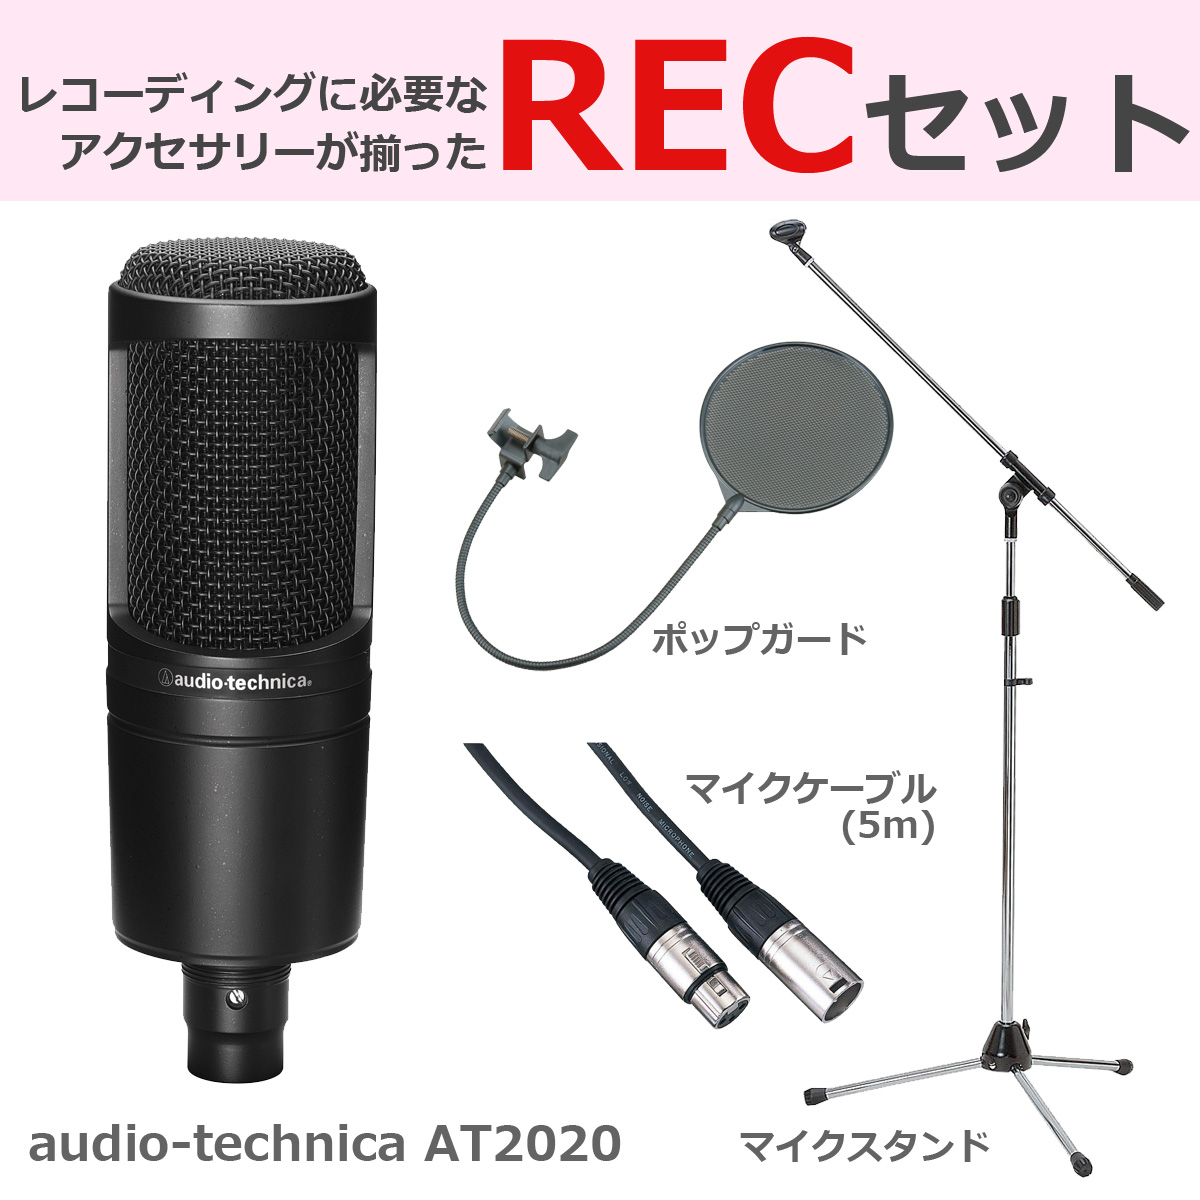 audio-technica / AT2020 コンデンサーマイクセット